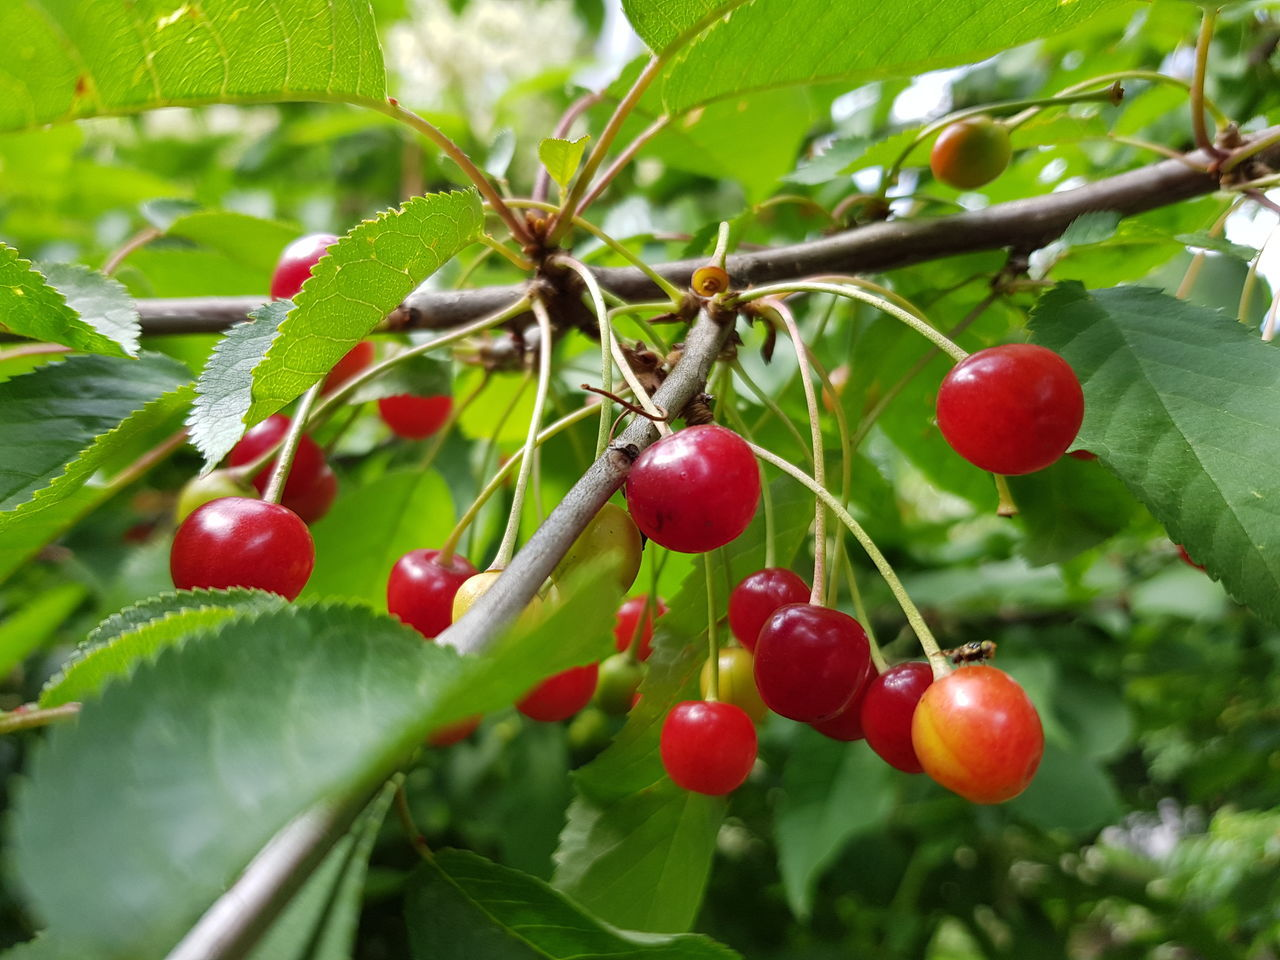 fruit, red, food and drink, growth, food, tree, nature, growing, green color, outdoors, day, rowanberry, leaf, freshness, close-up, rose hip, no people, beauty in nature, branch, healthy eating